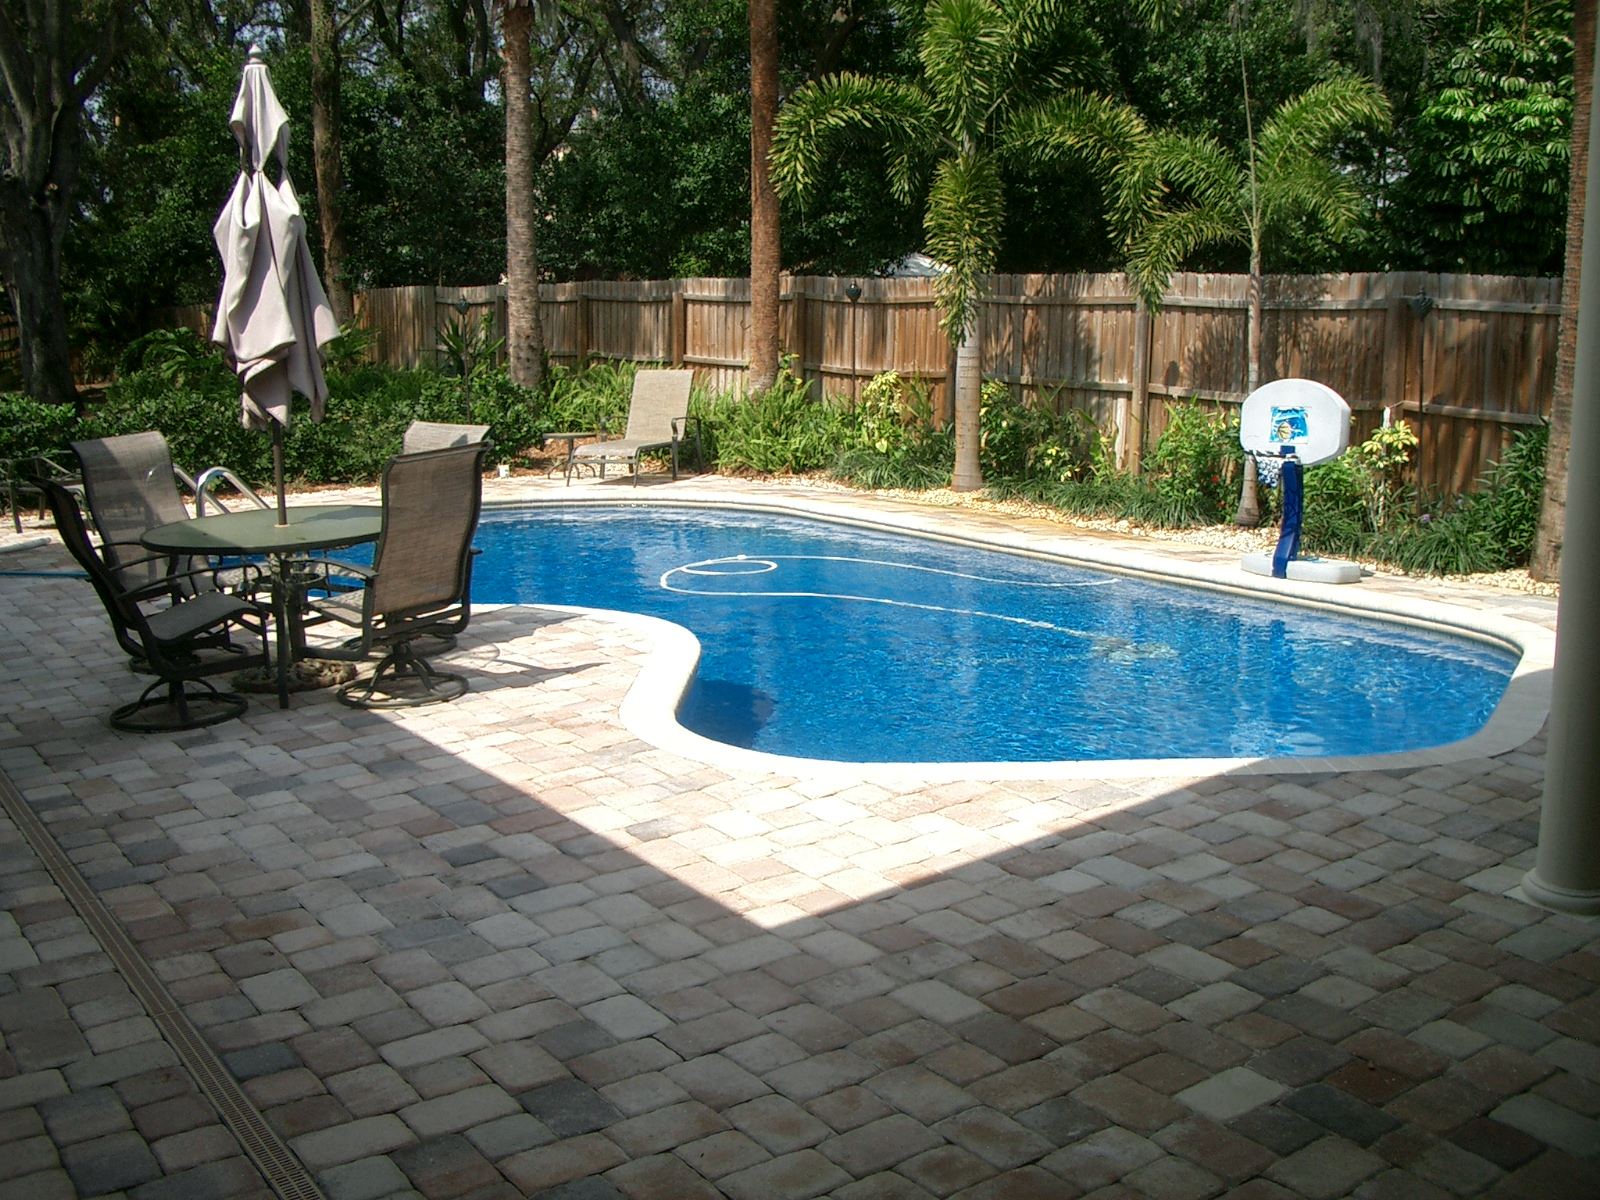 backyard landscaping ideas swimming pool design - Backyard Pool Design